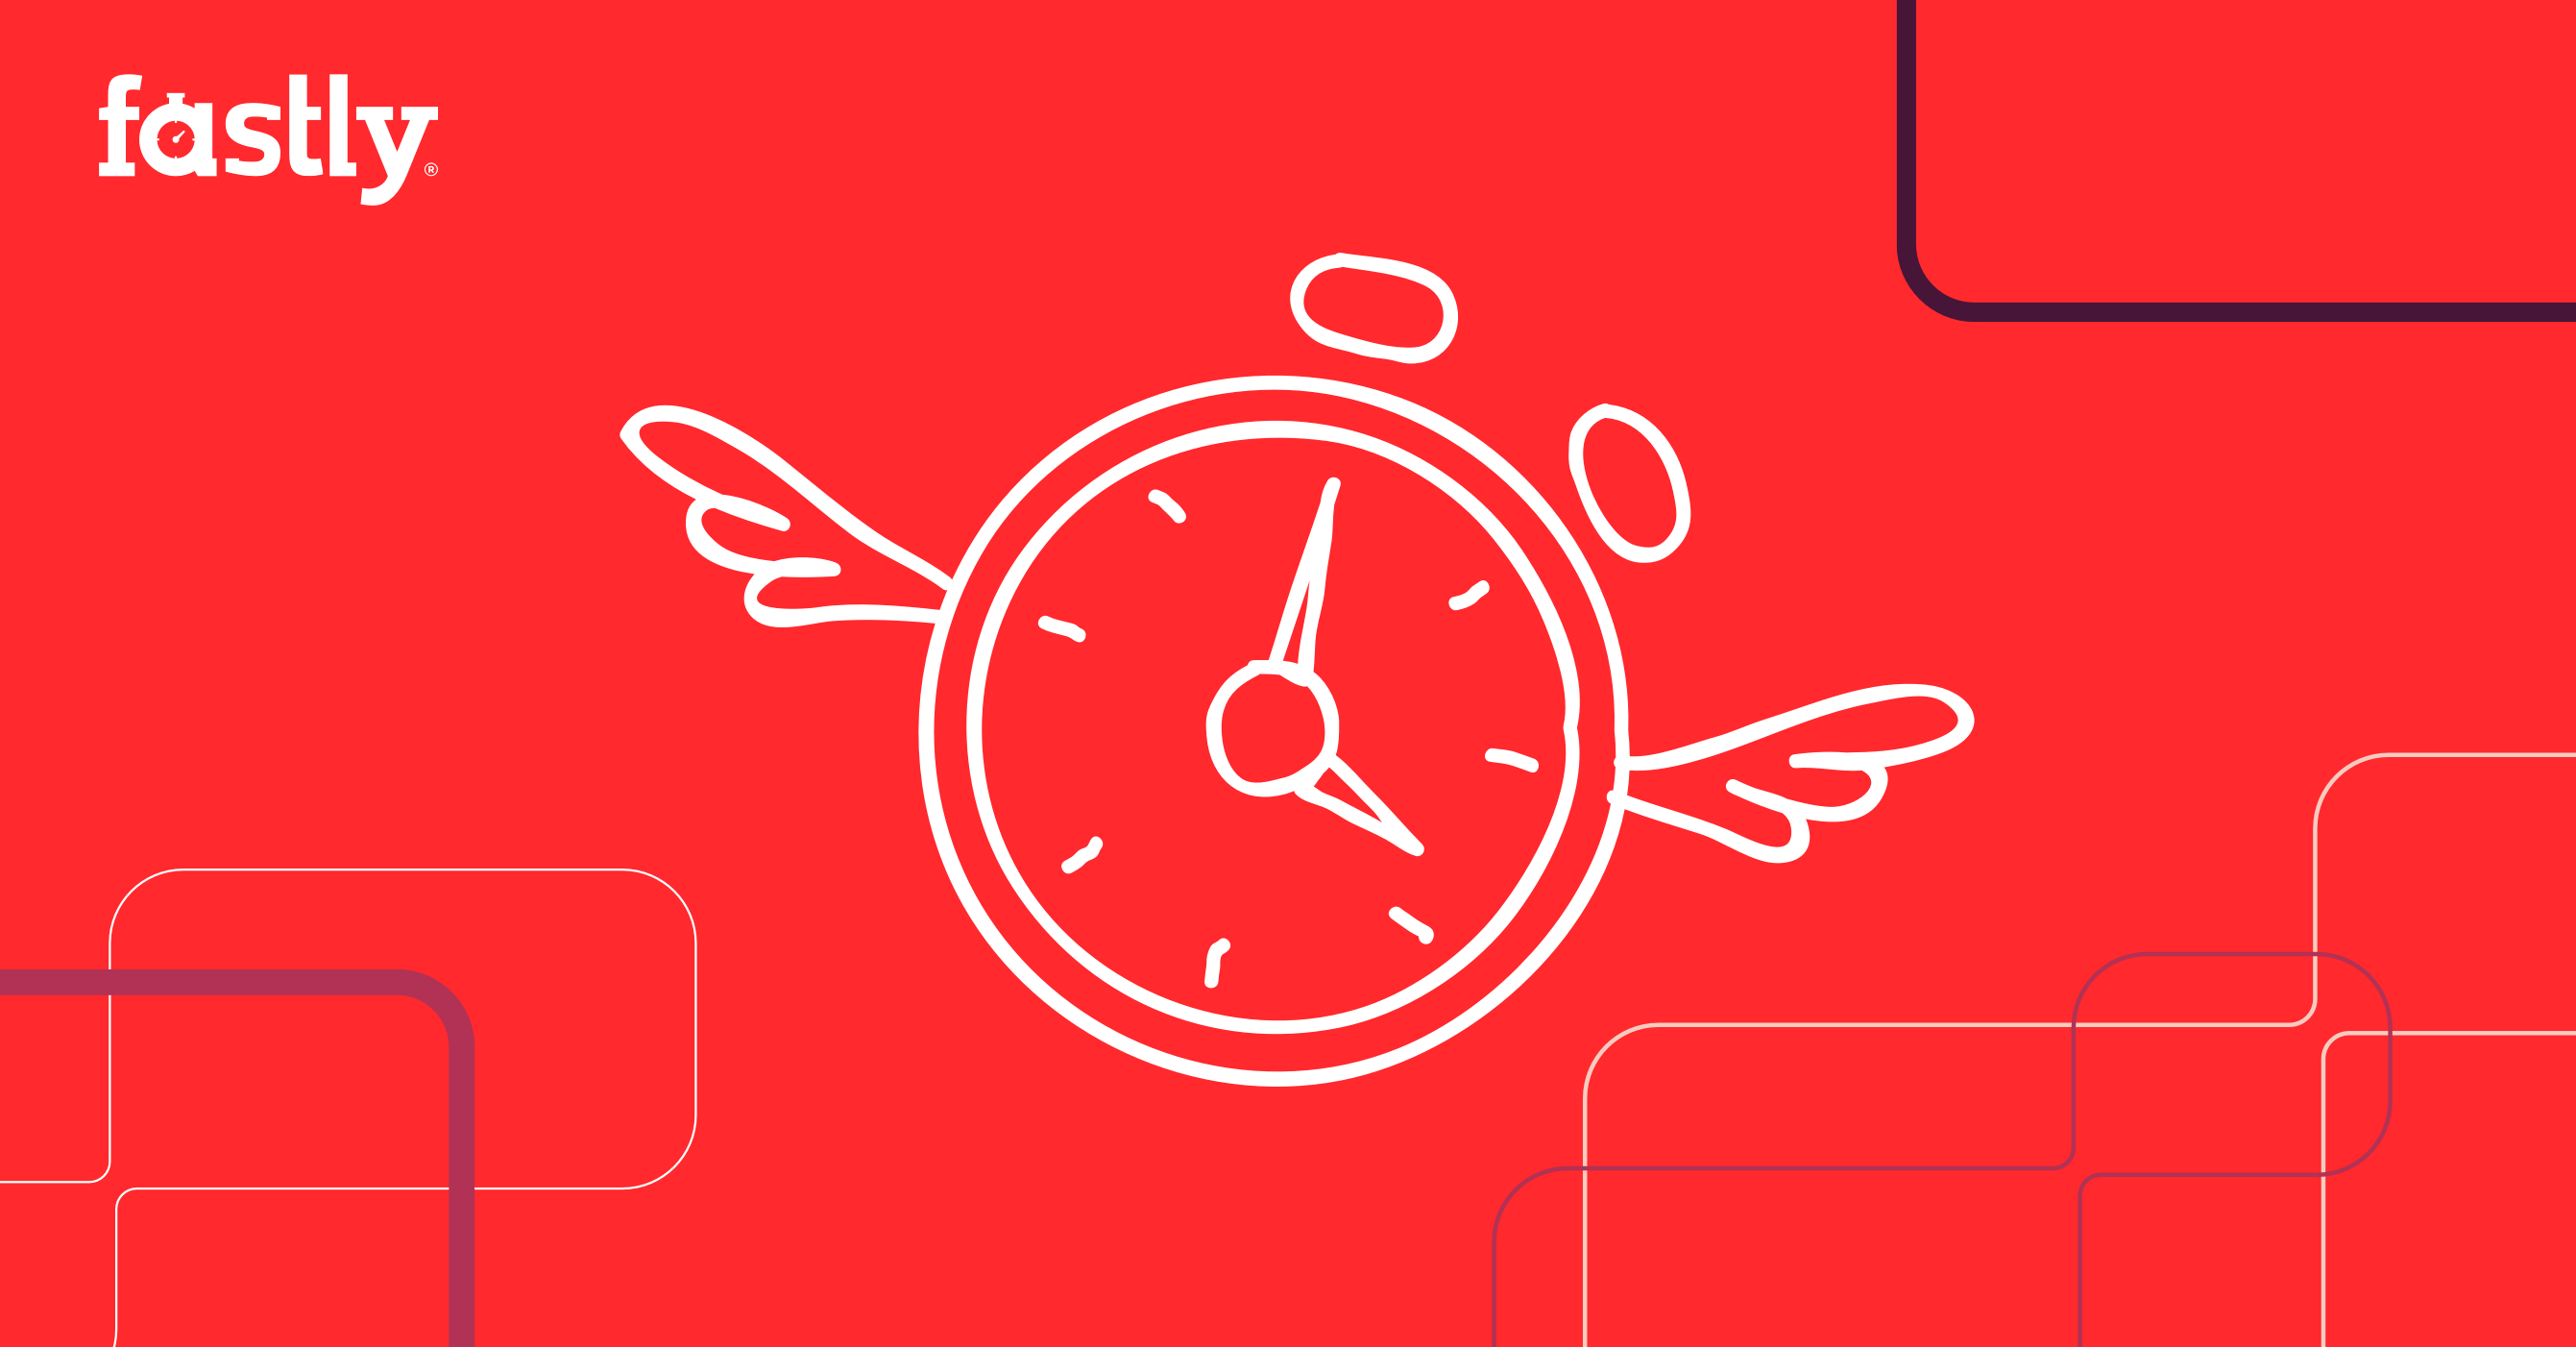 Fastly rebrand clock